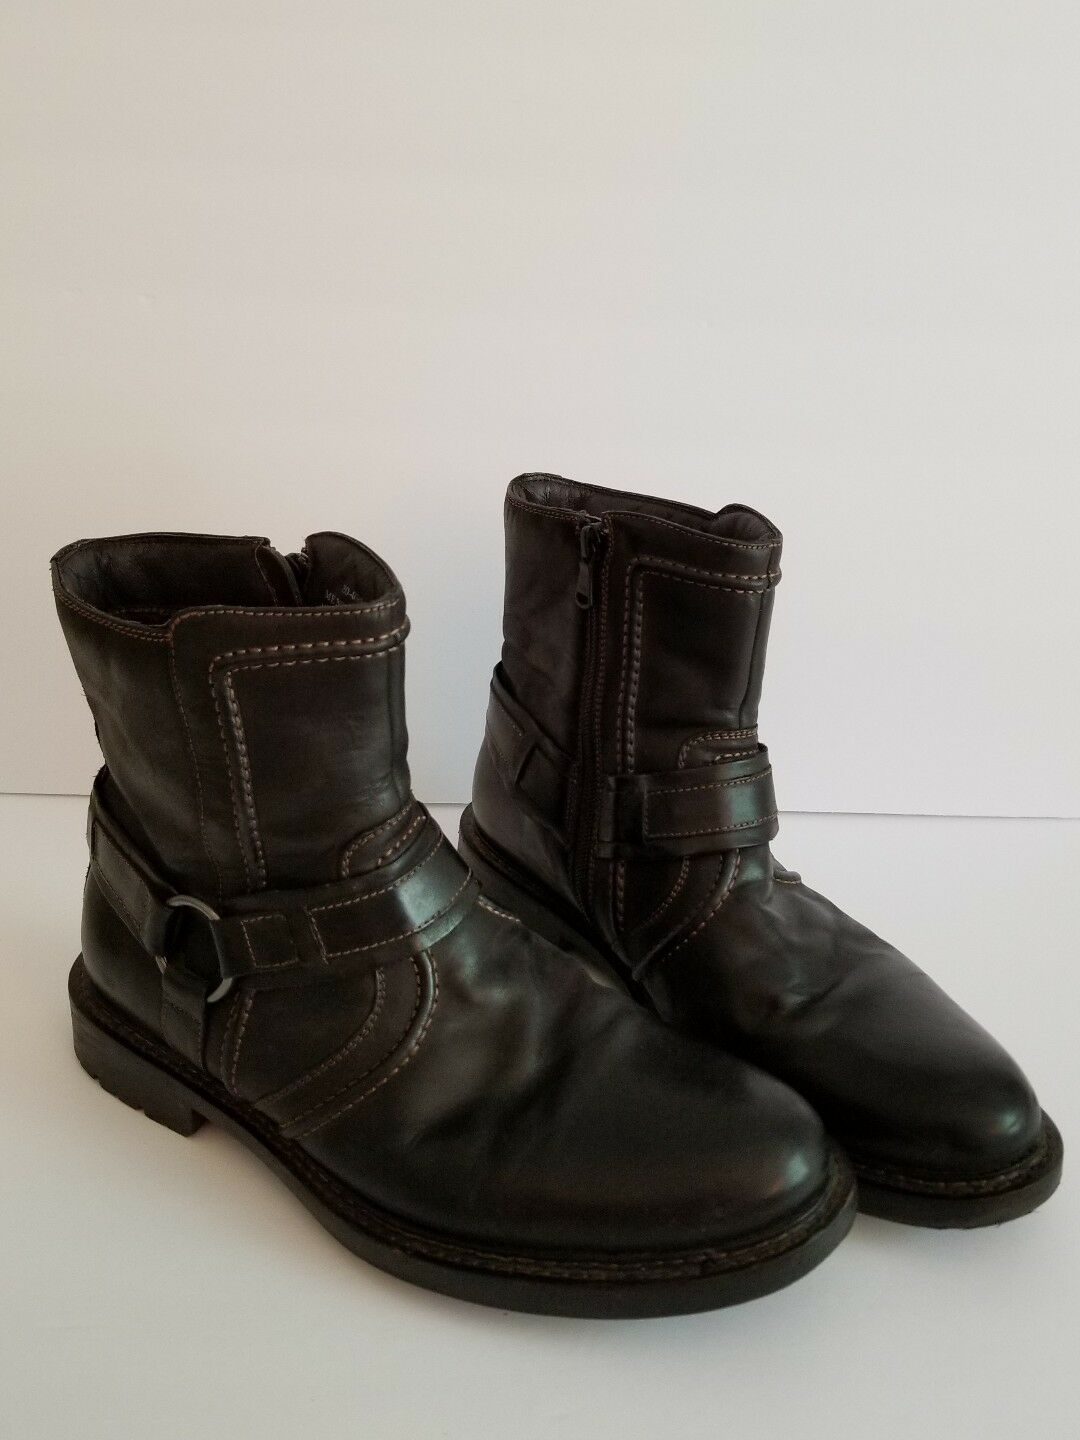 JOHNSTON AND MURPHY BLACK LEATHER MENS HARNESS BOOTS SIZE 9